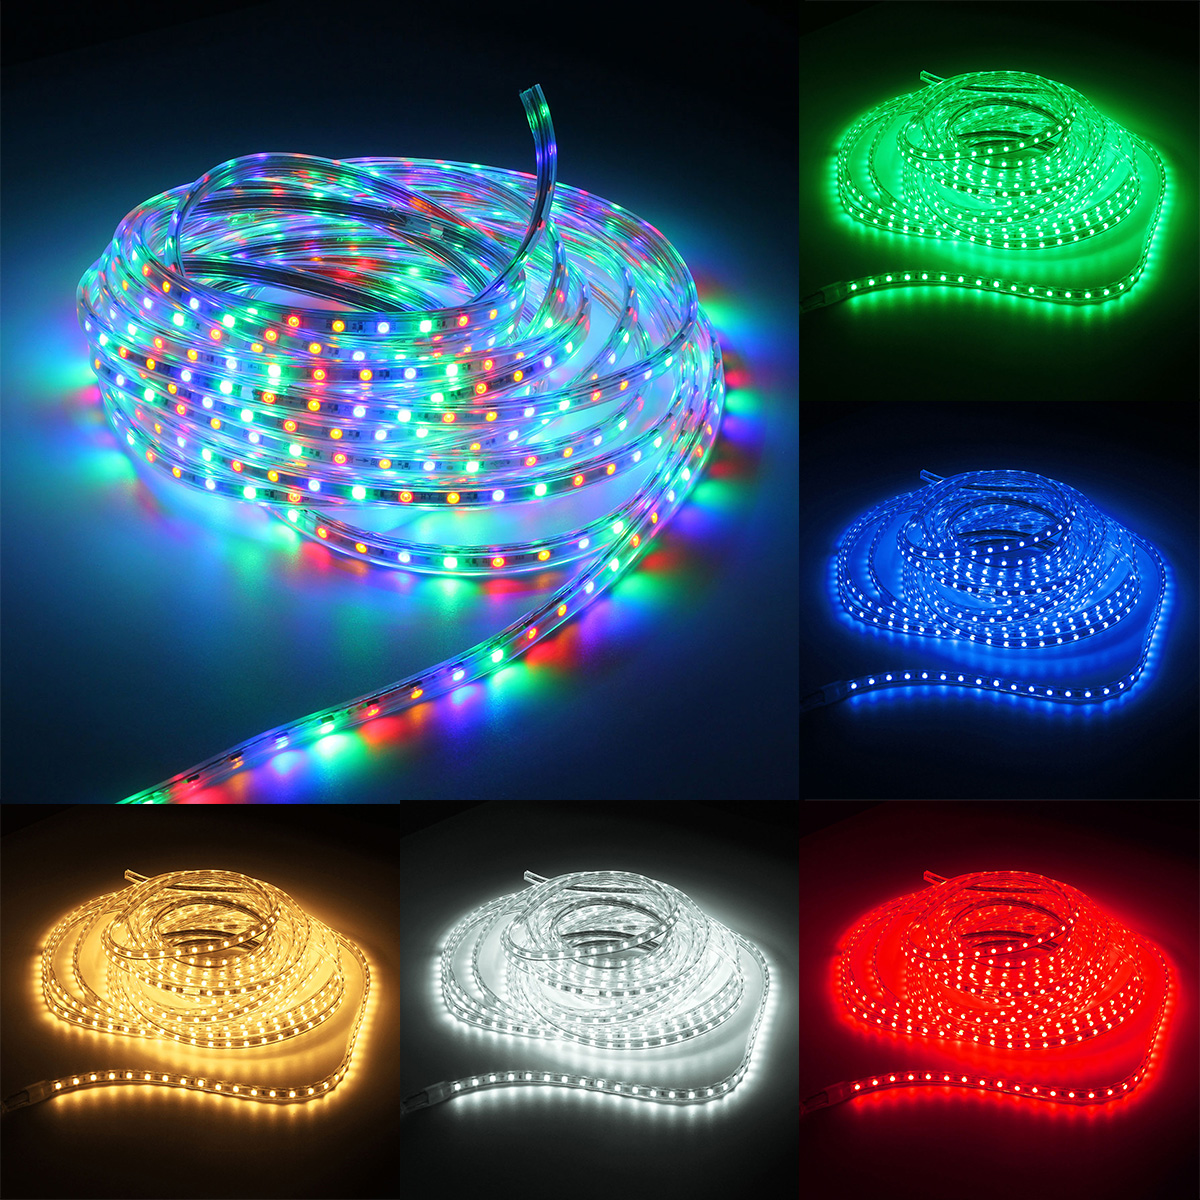 Outdoor Waterproof Tape Lights: 220V 10M 5050 LED SMD Outdoor Waterproof Flexible Tape